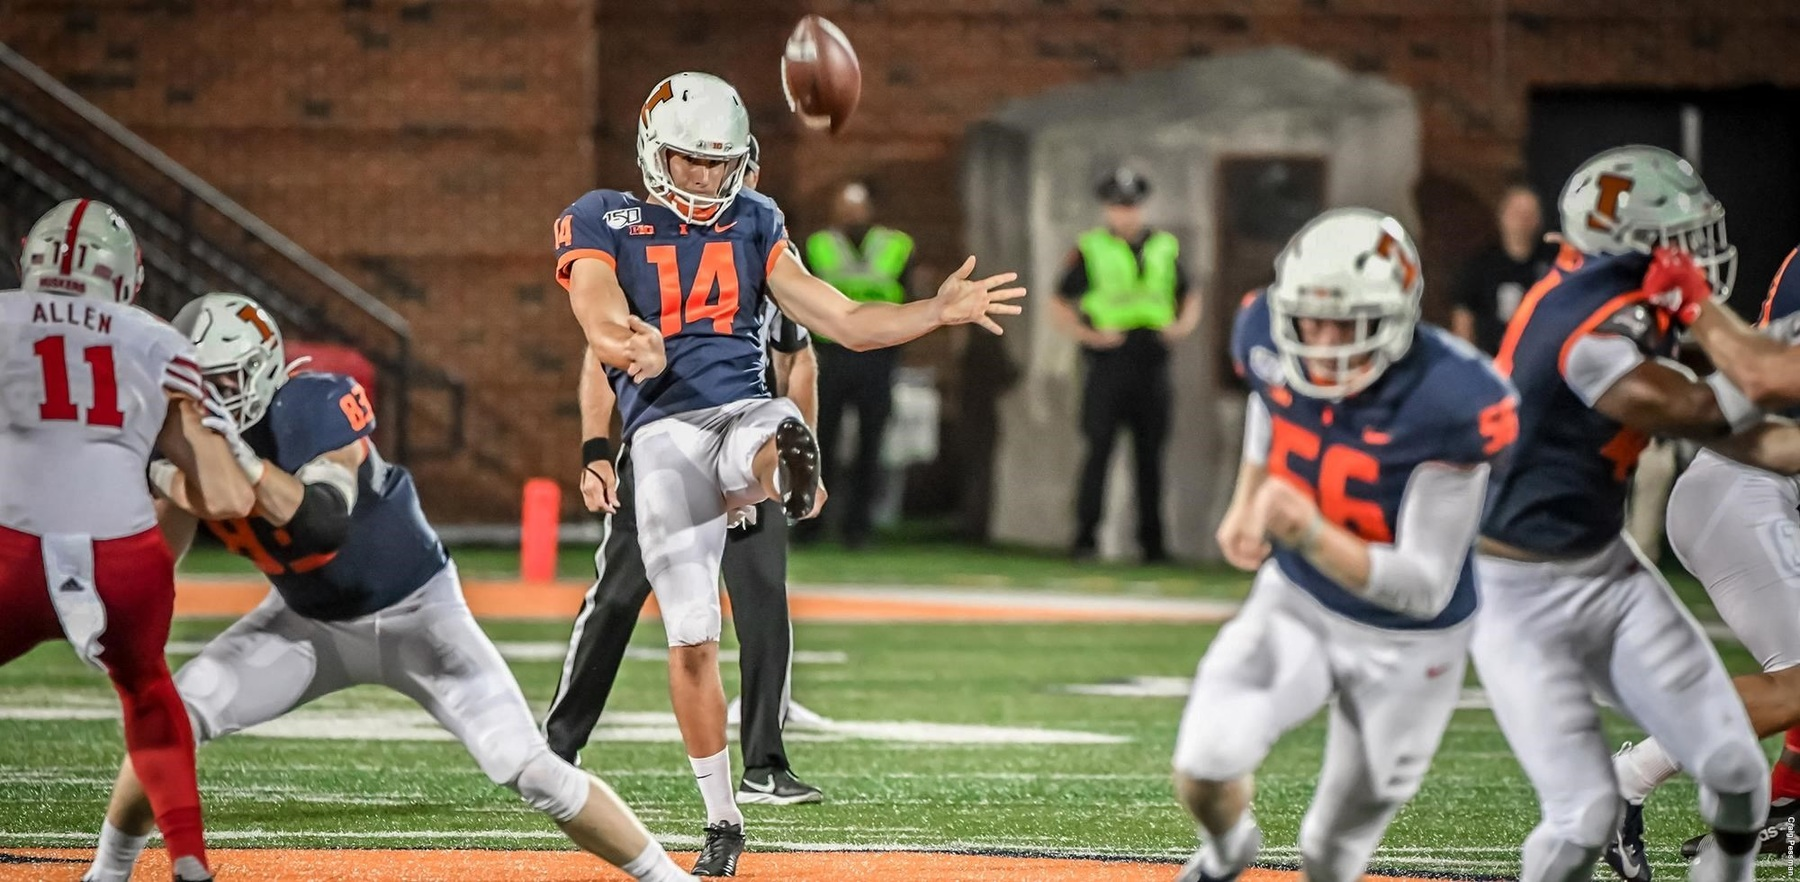 Hayes punts as other Illini defend him